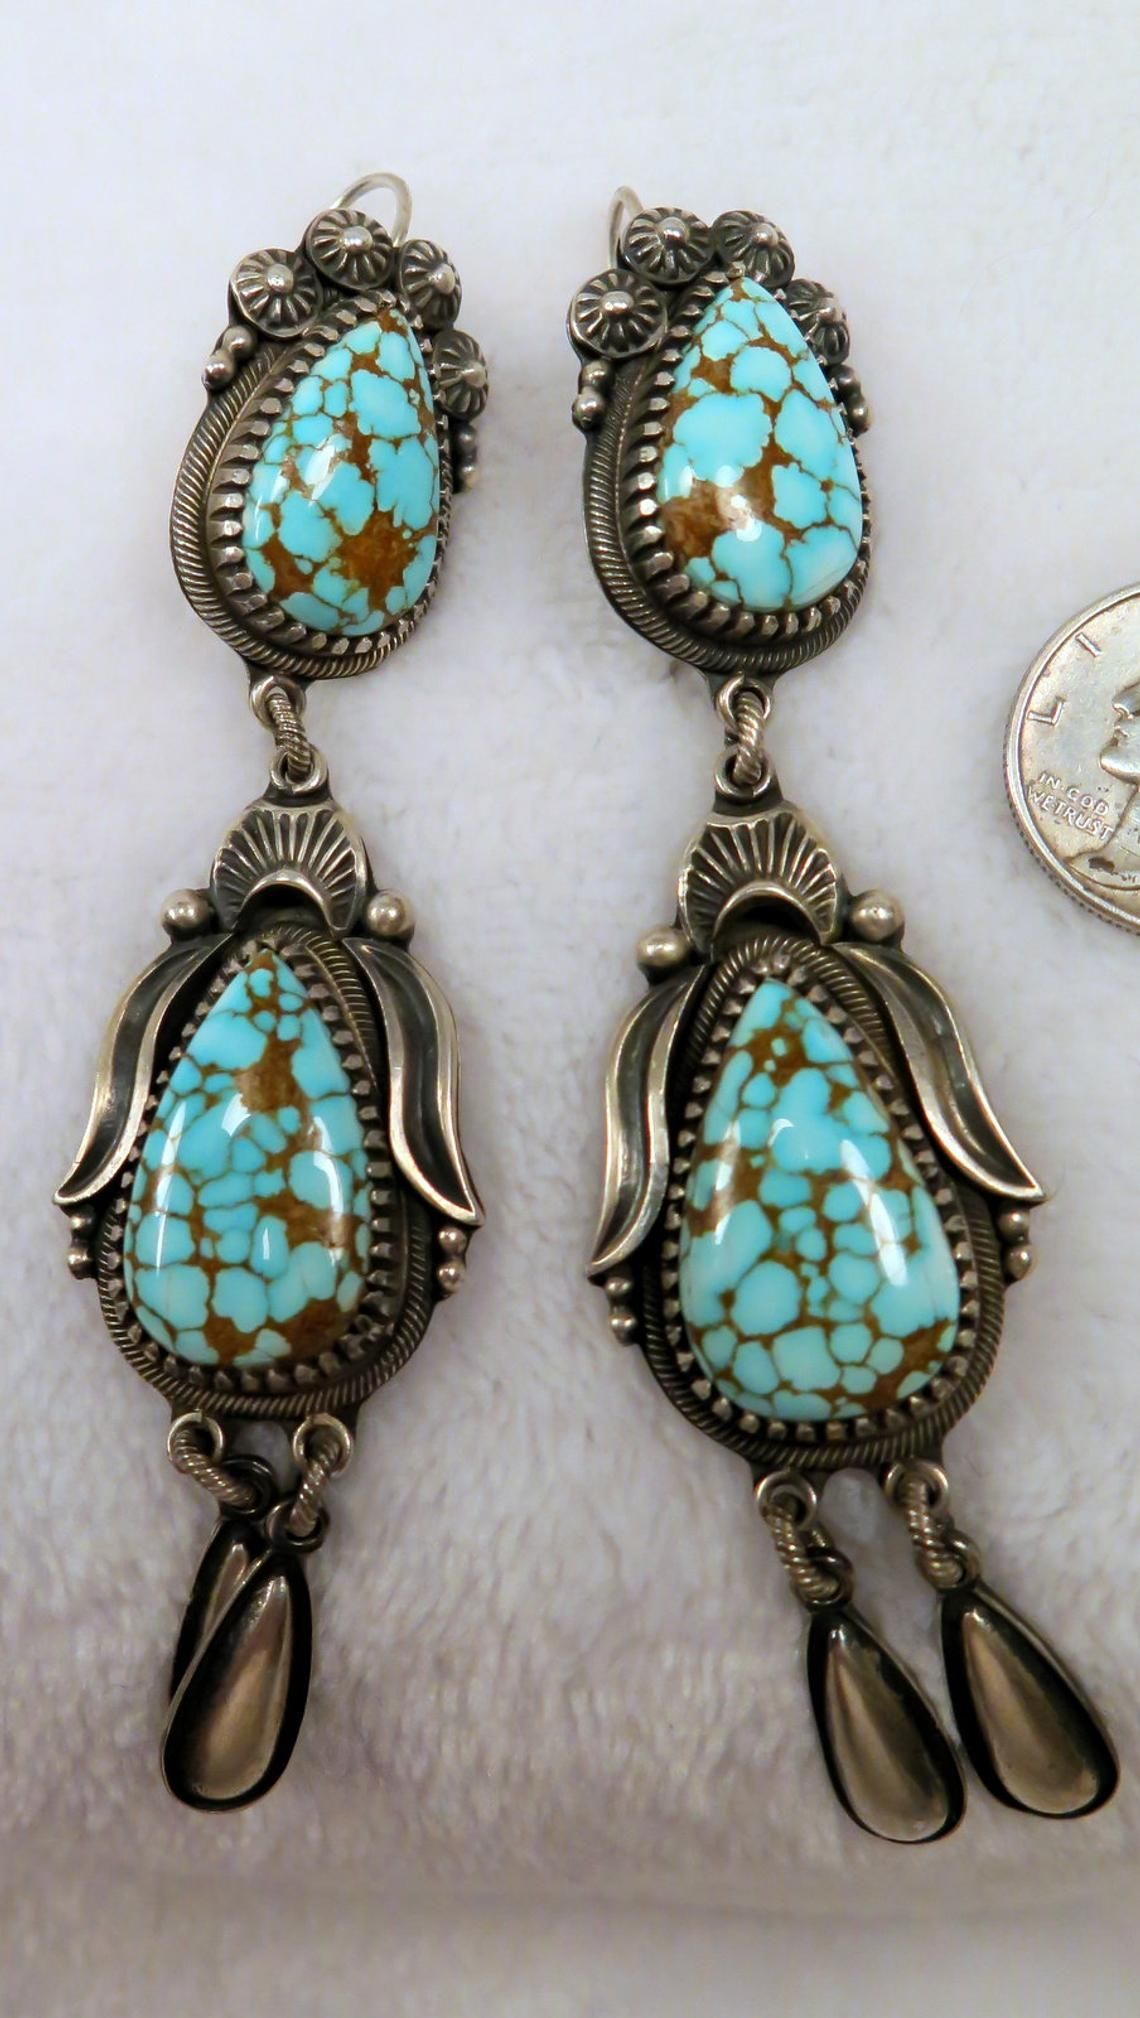 Delbert Gordon High Grade Number 8 Red Web Nevada Turquoise Etsy In 2021 Turquoise Wedding Jewelry Turquoise Stone Jewelry Turquoise Jewelry